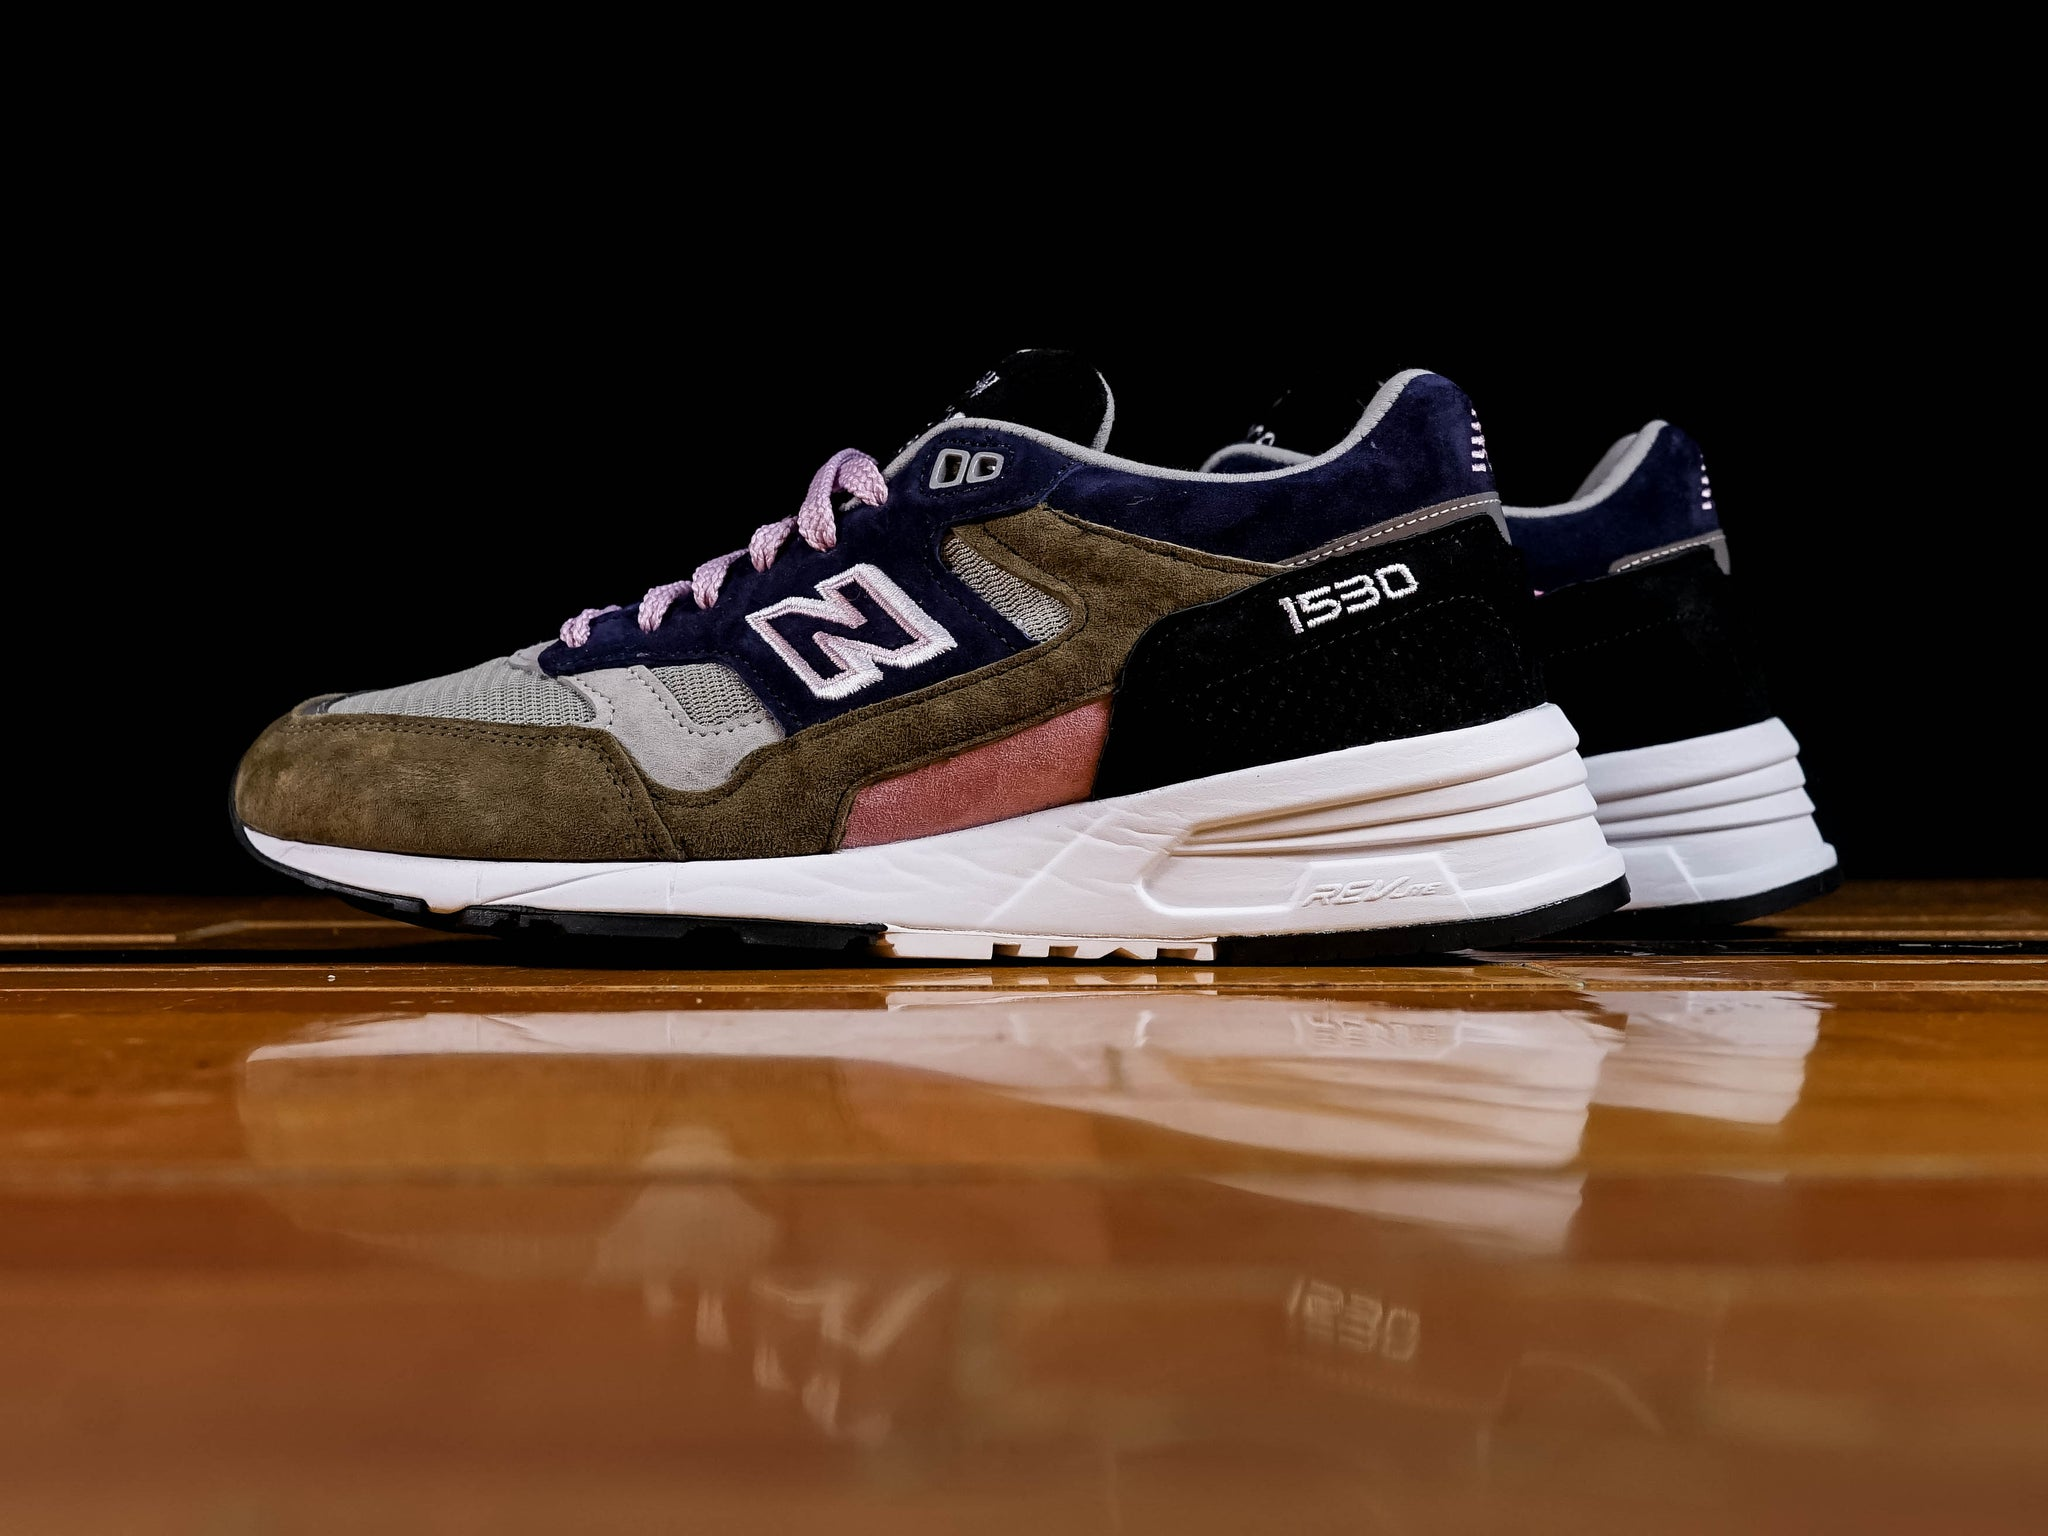 on sale e5710 99381 Men's New Balance 1530 Made in UK [M1530KGL]